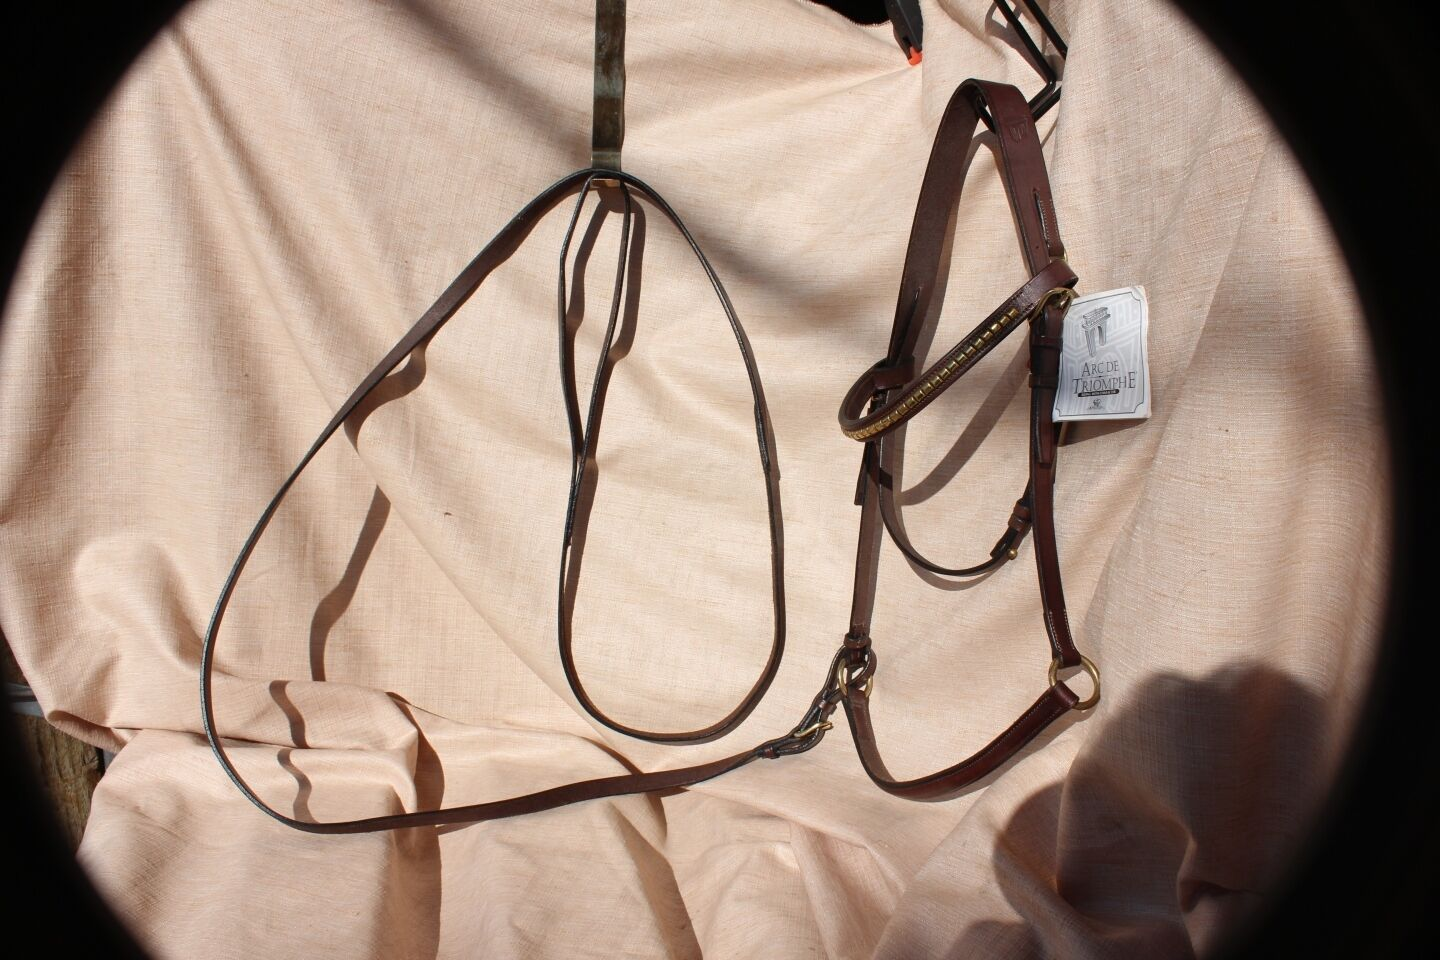 18-5 New Arc de Triomphe brown presentation bridle with lead full size